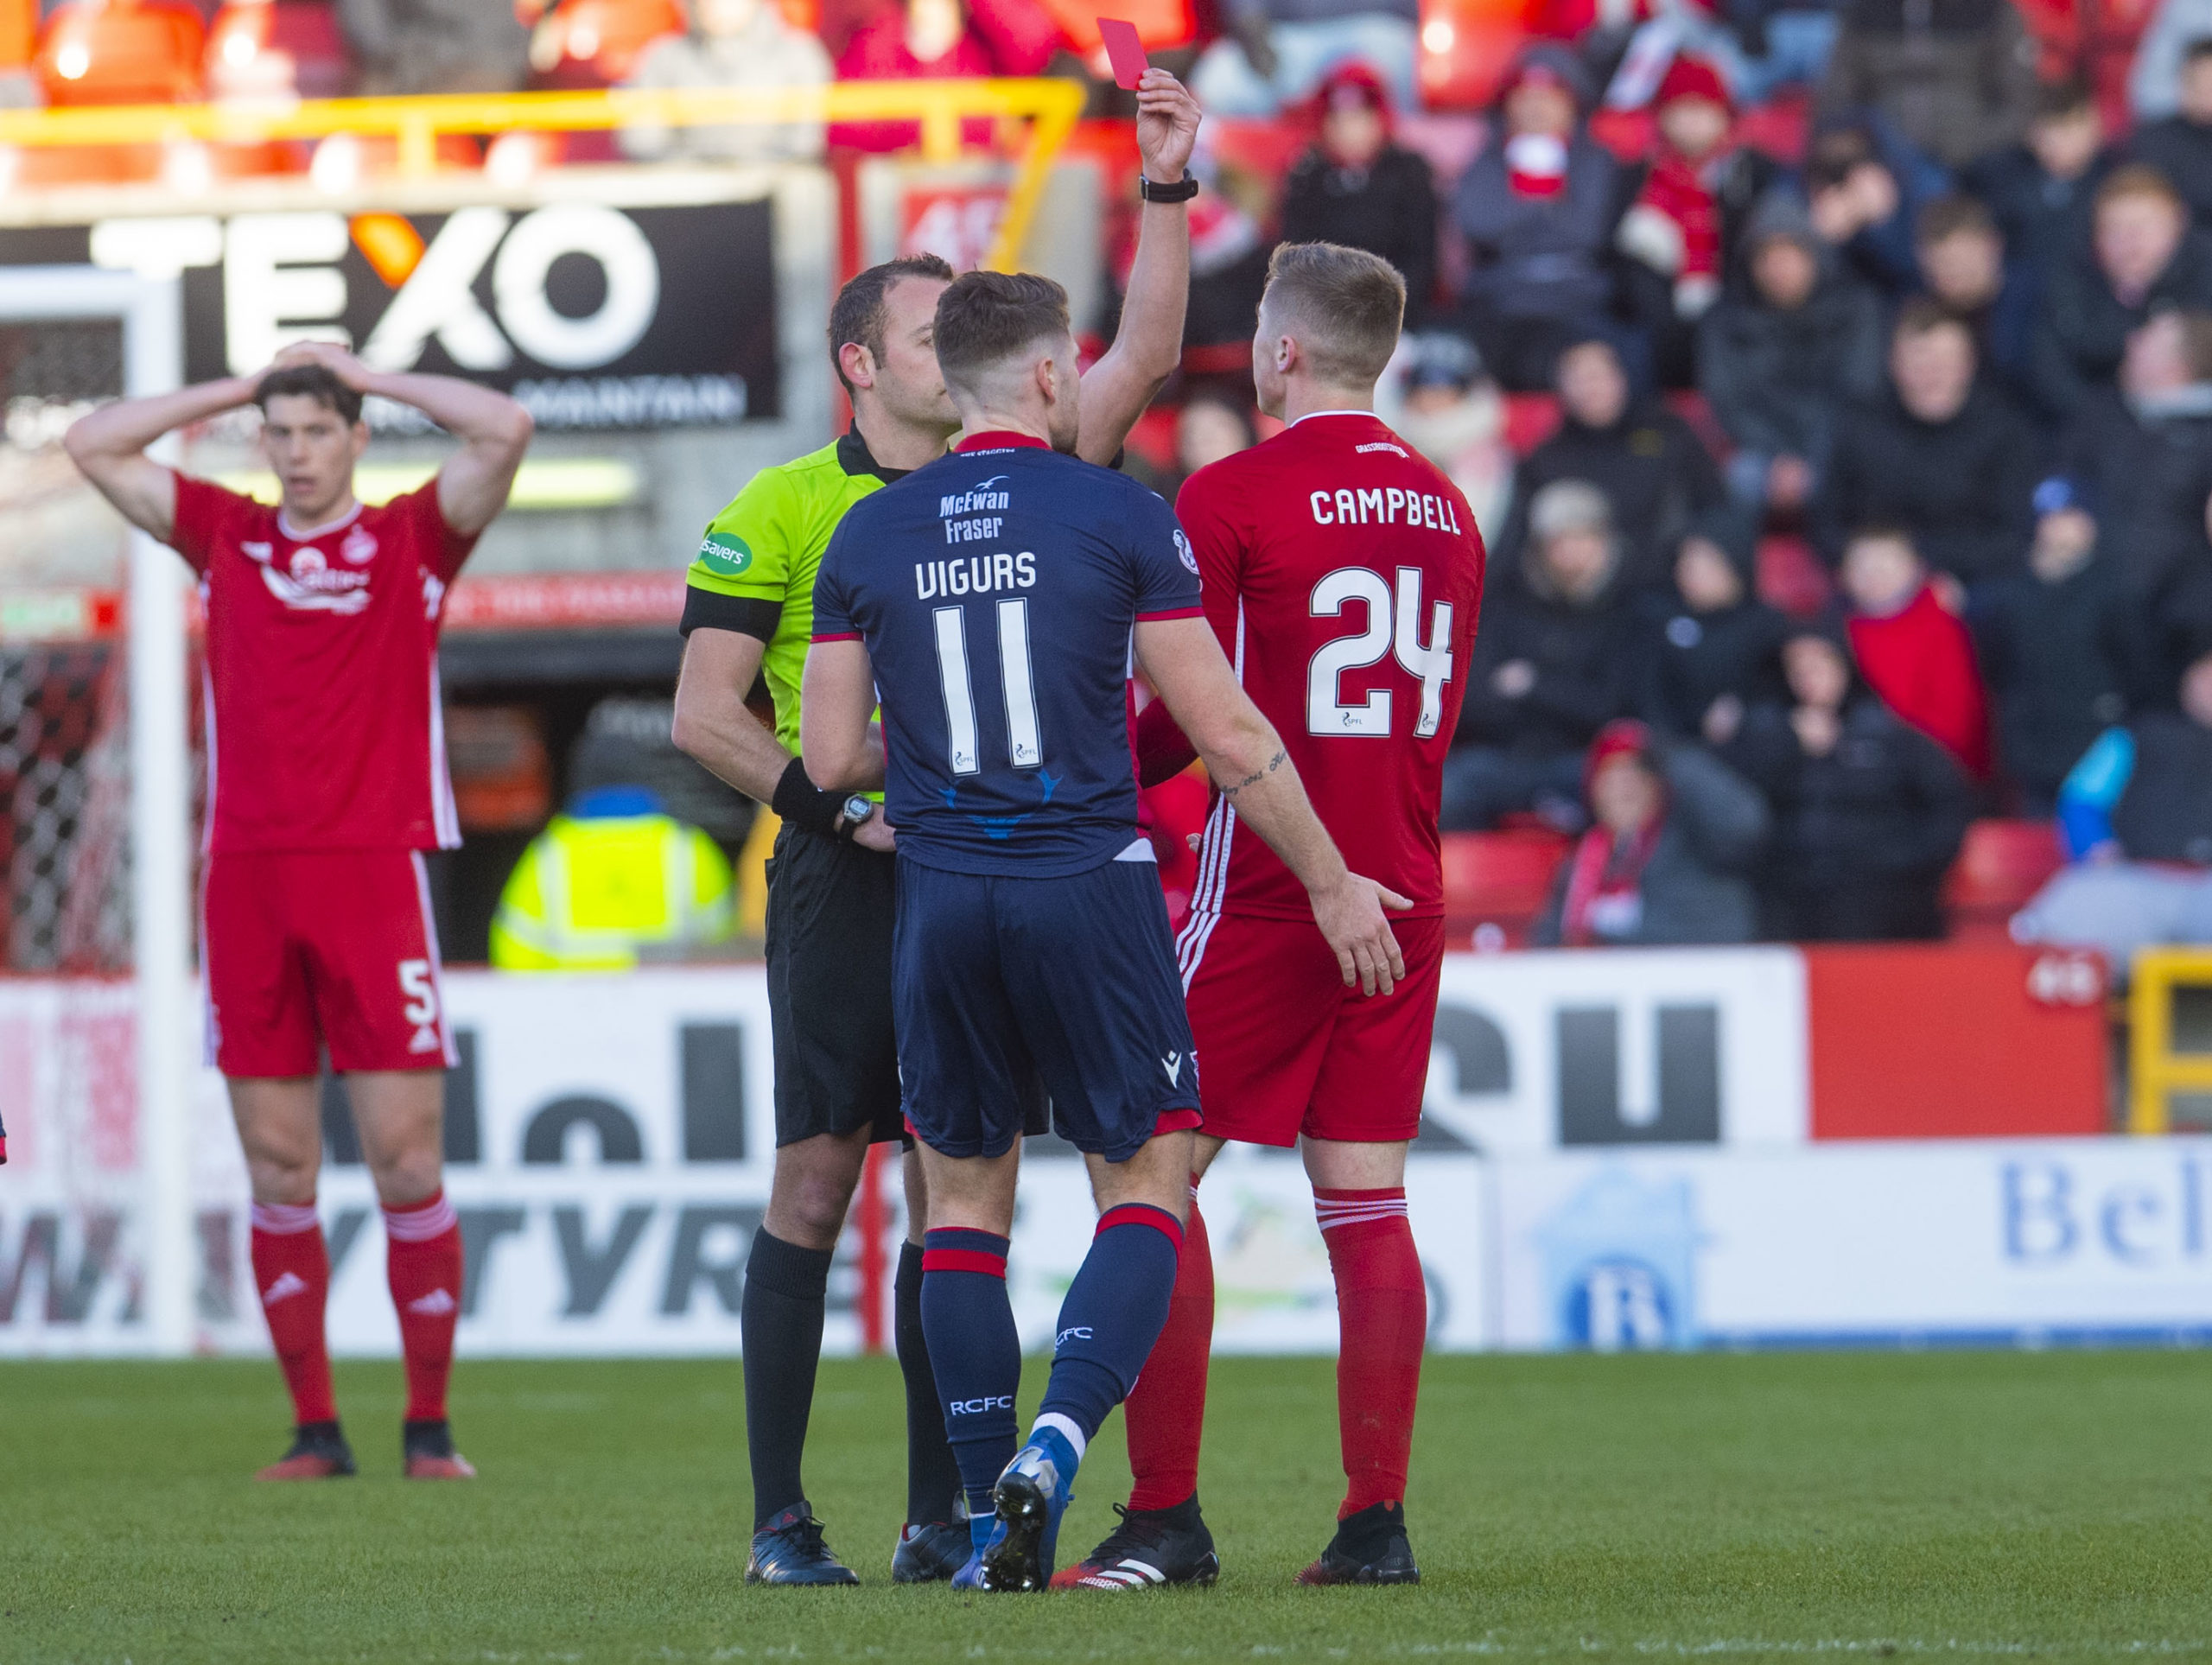 Dean Campbell is sent off by referee Gavin Duncan during the Ladbrokes Premiership match between Aberdeen and Ross County